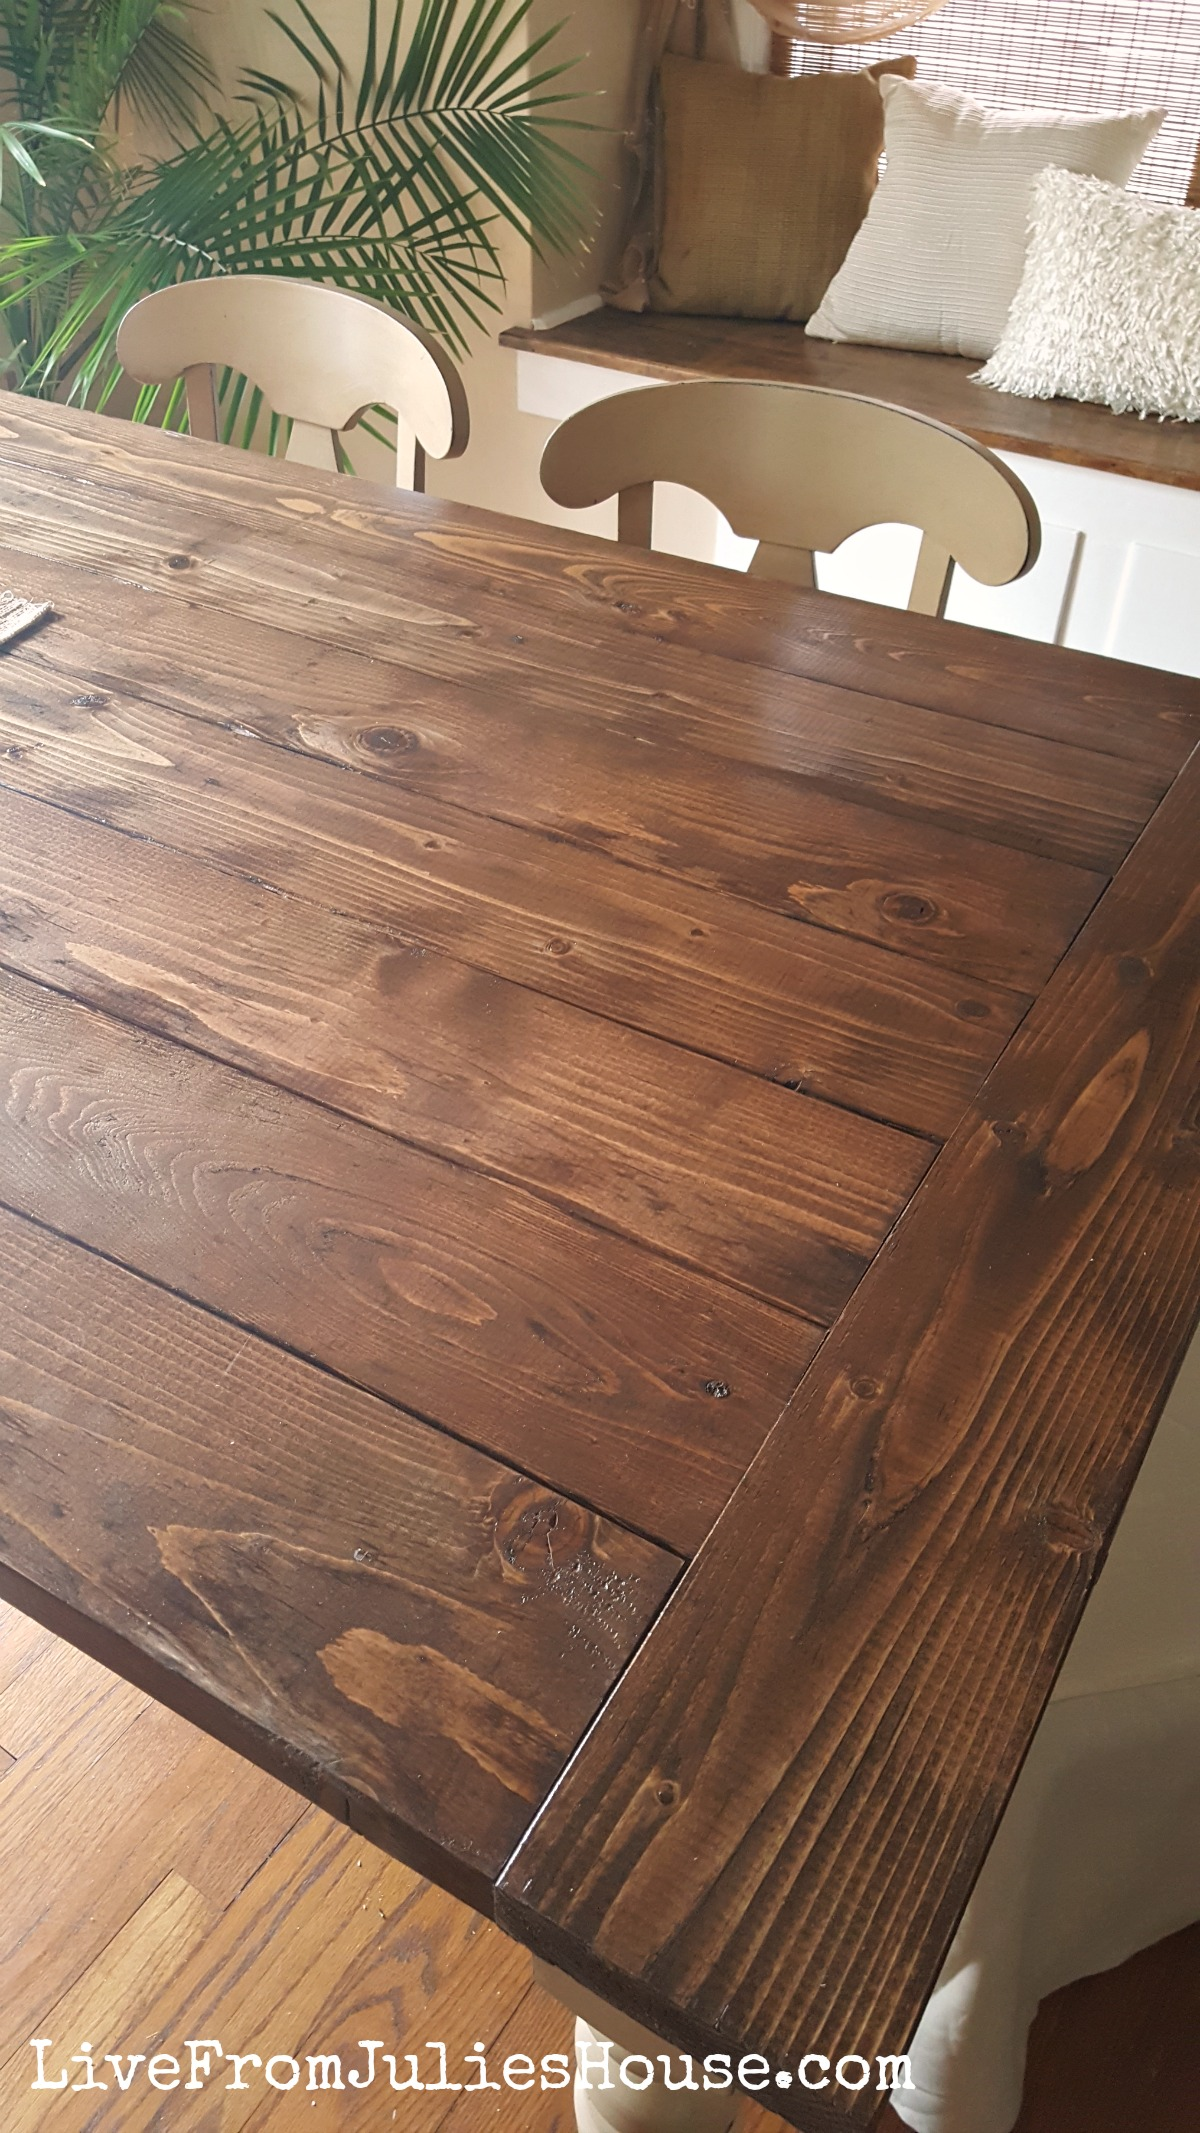 Do you have a dining room table that has seen better days? Give it a whole new updated look with my tutorial for a DIY Farmhouse Table.